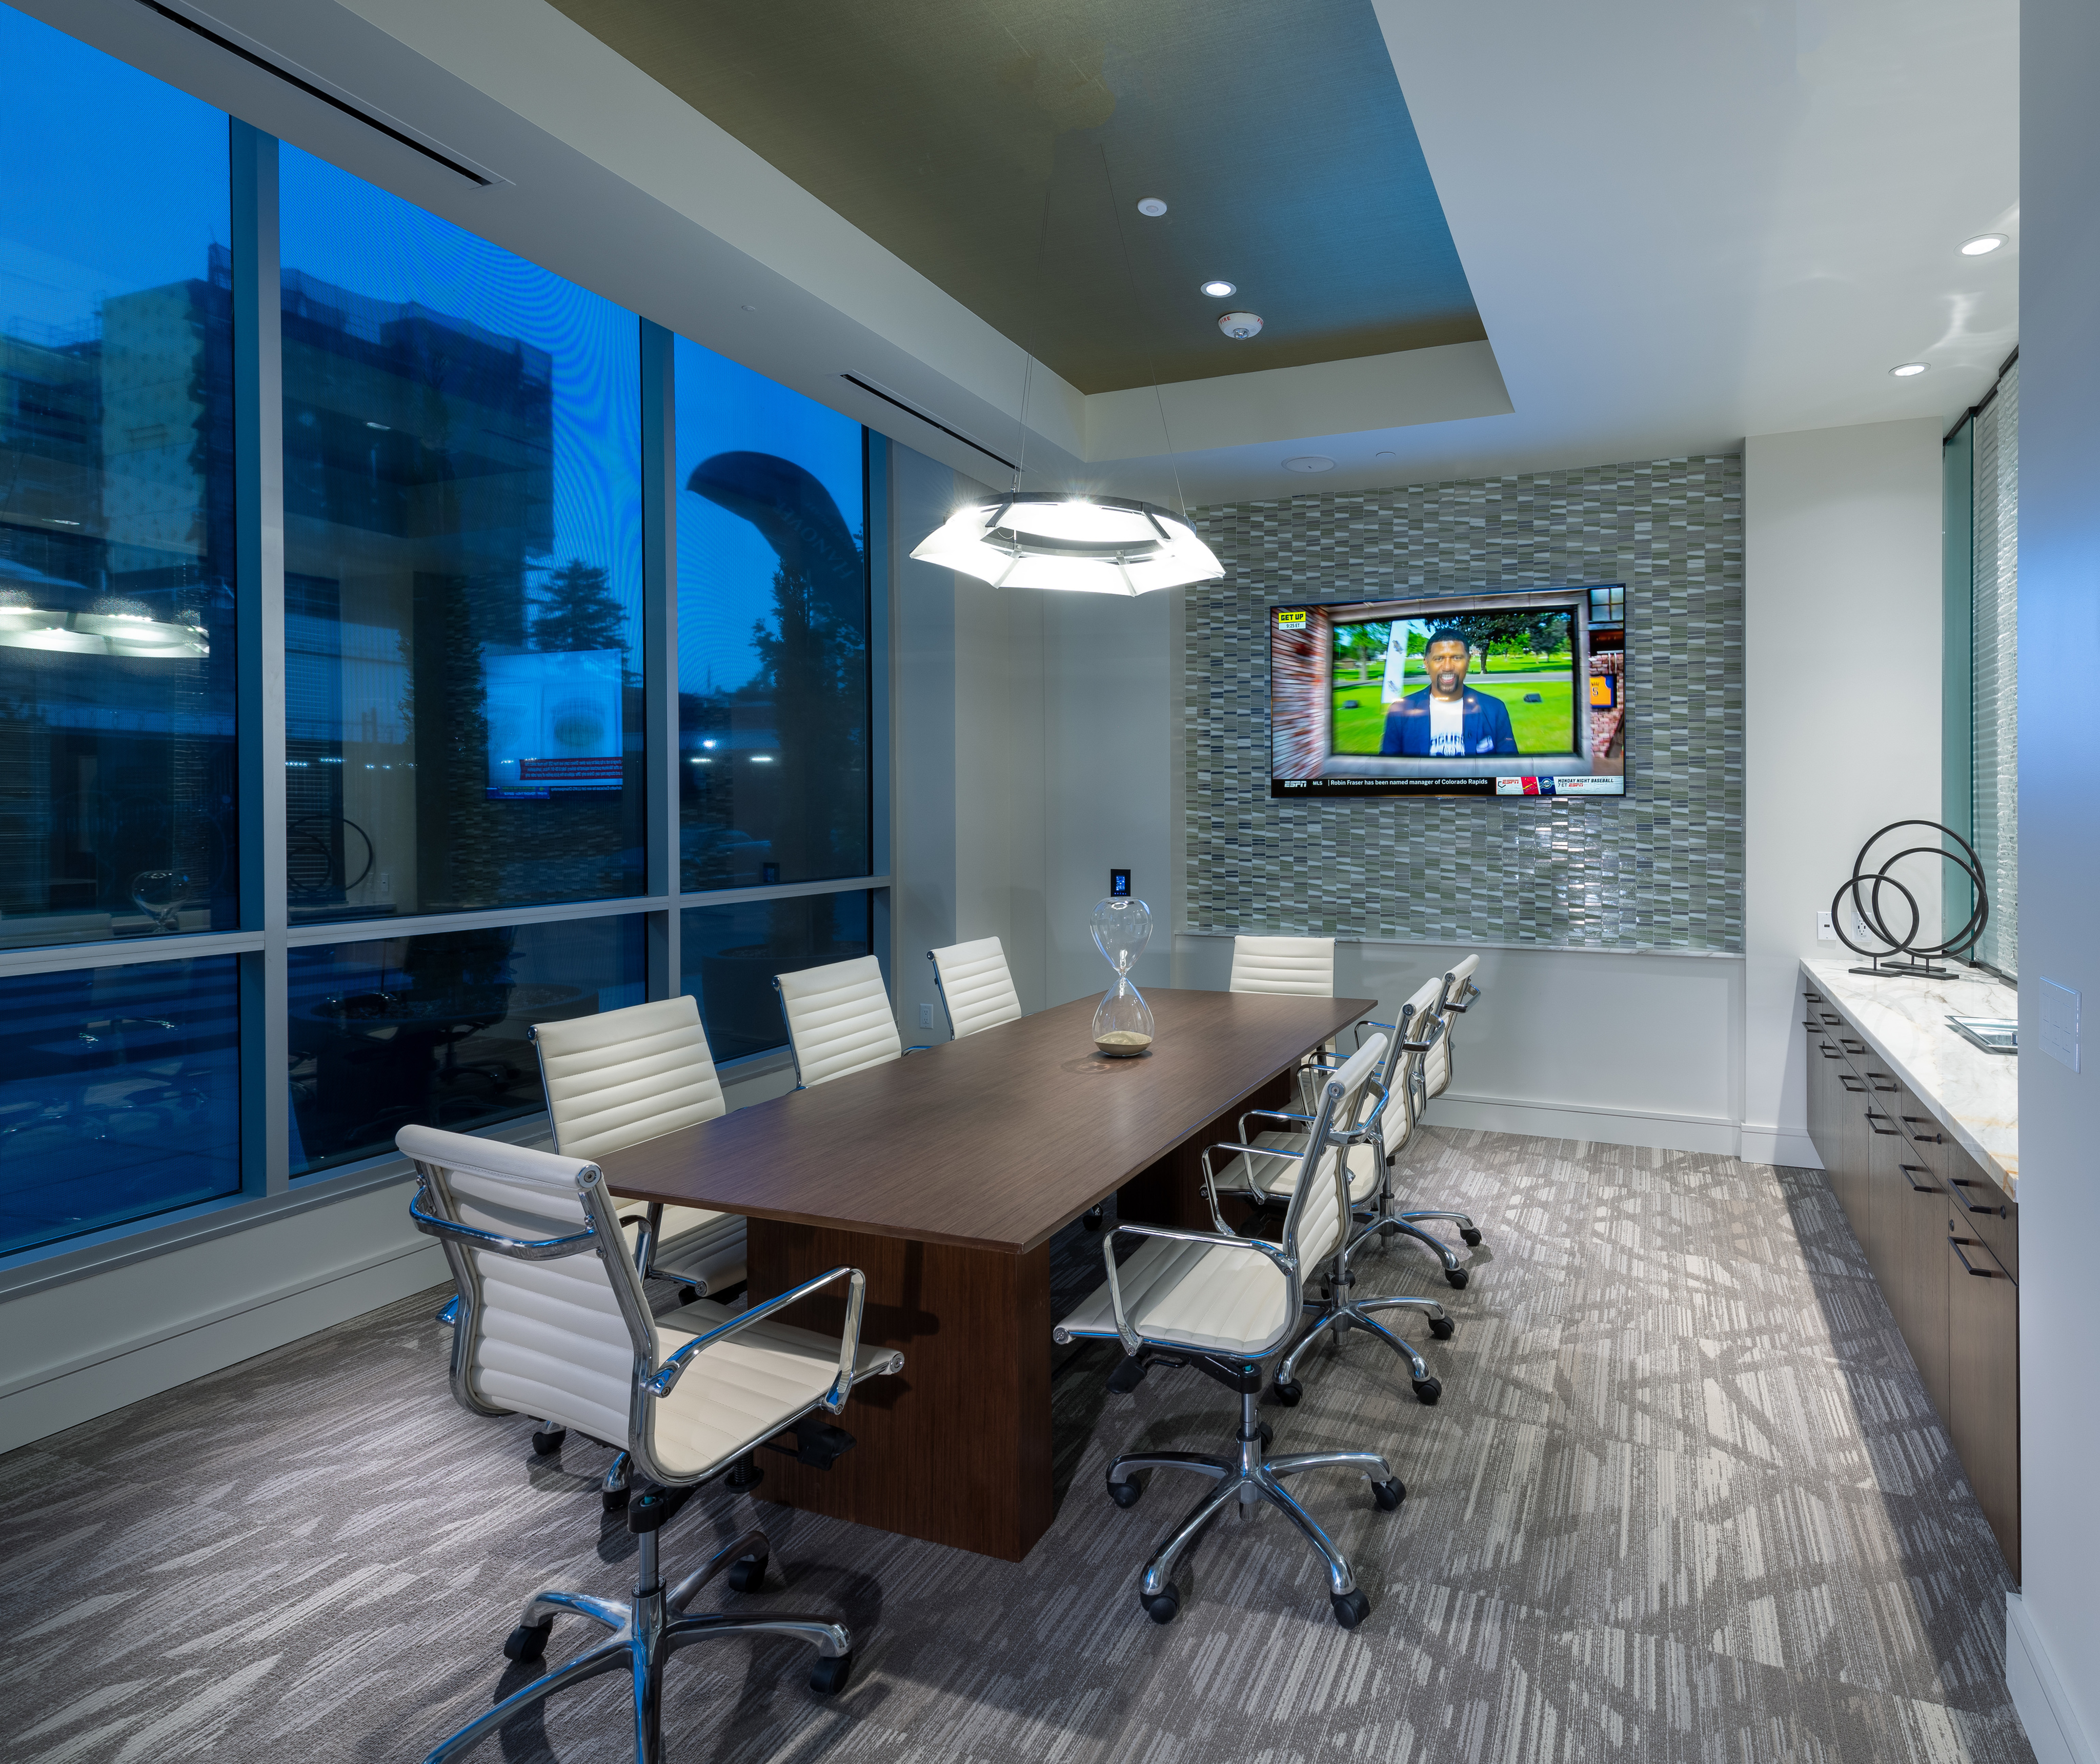 Executive conference room with presentation tv at Hanover Northgate